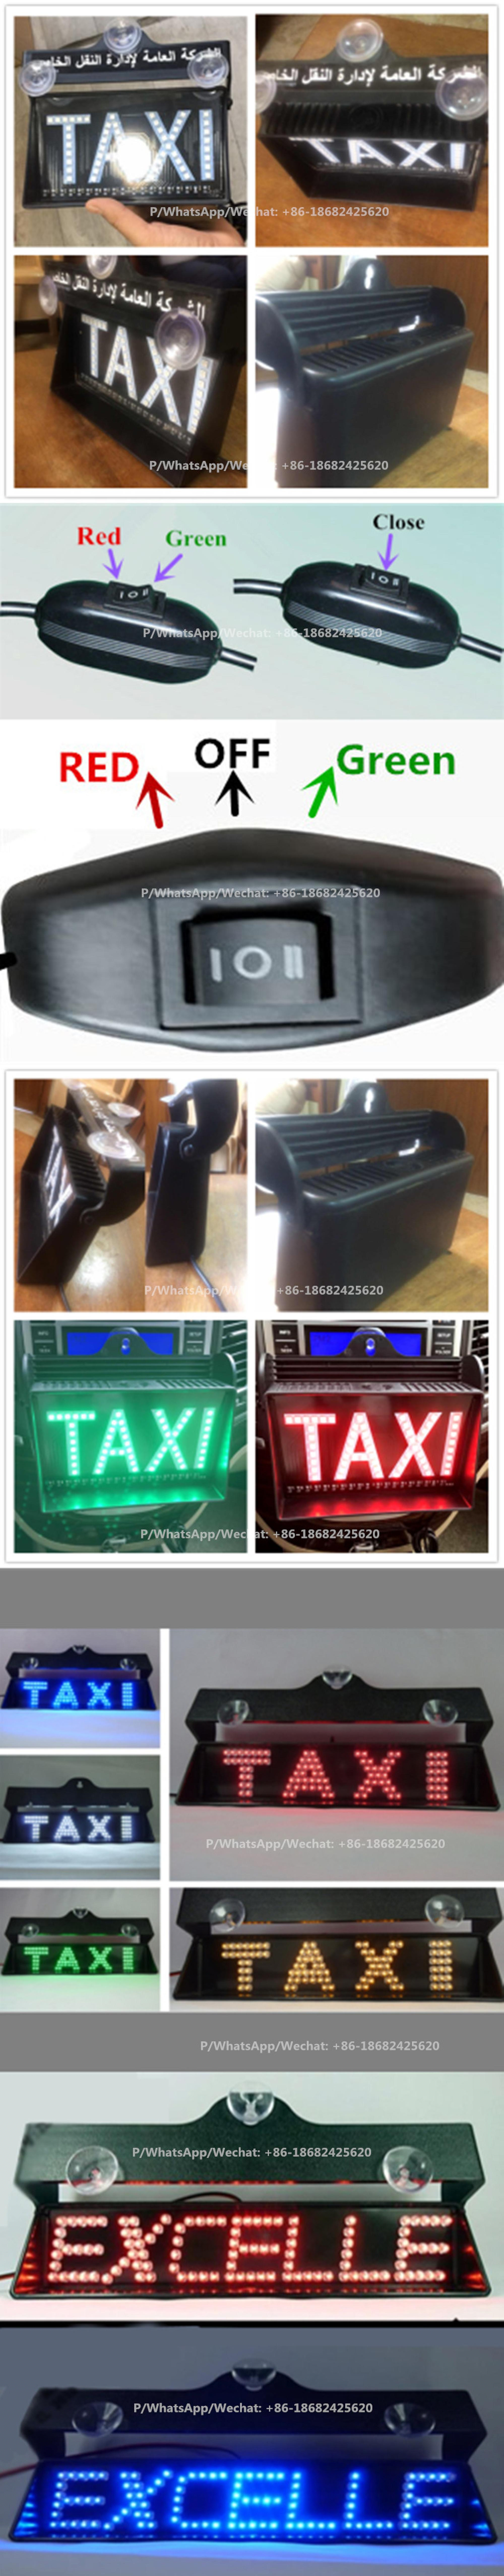 Front Windshield Suction Cup Mounting Adjustable Slope Brackets RED Green TAXI LED Sign